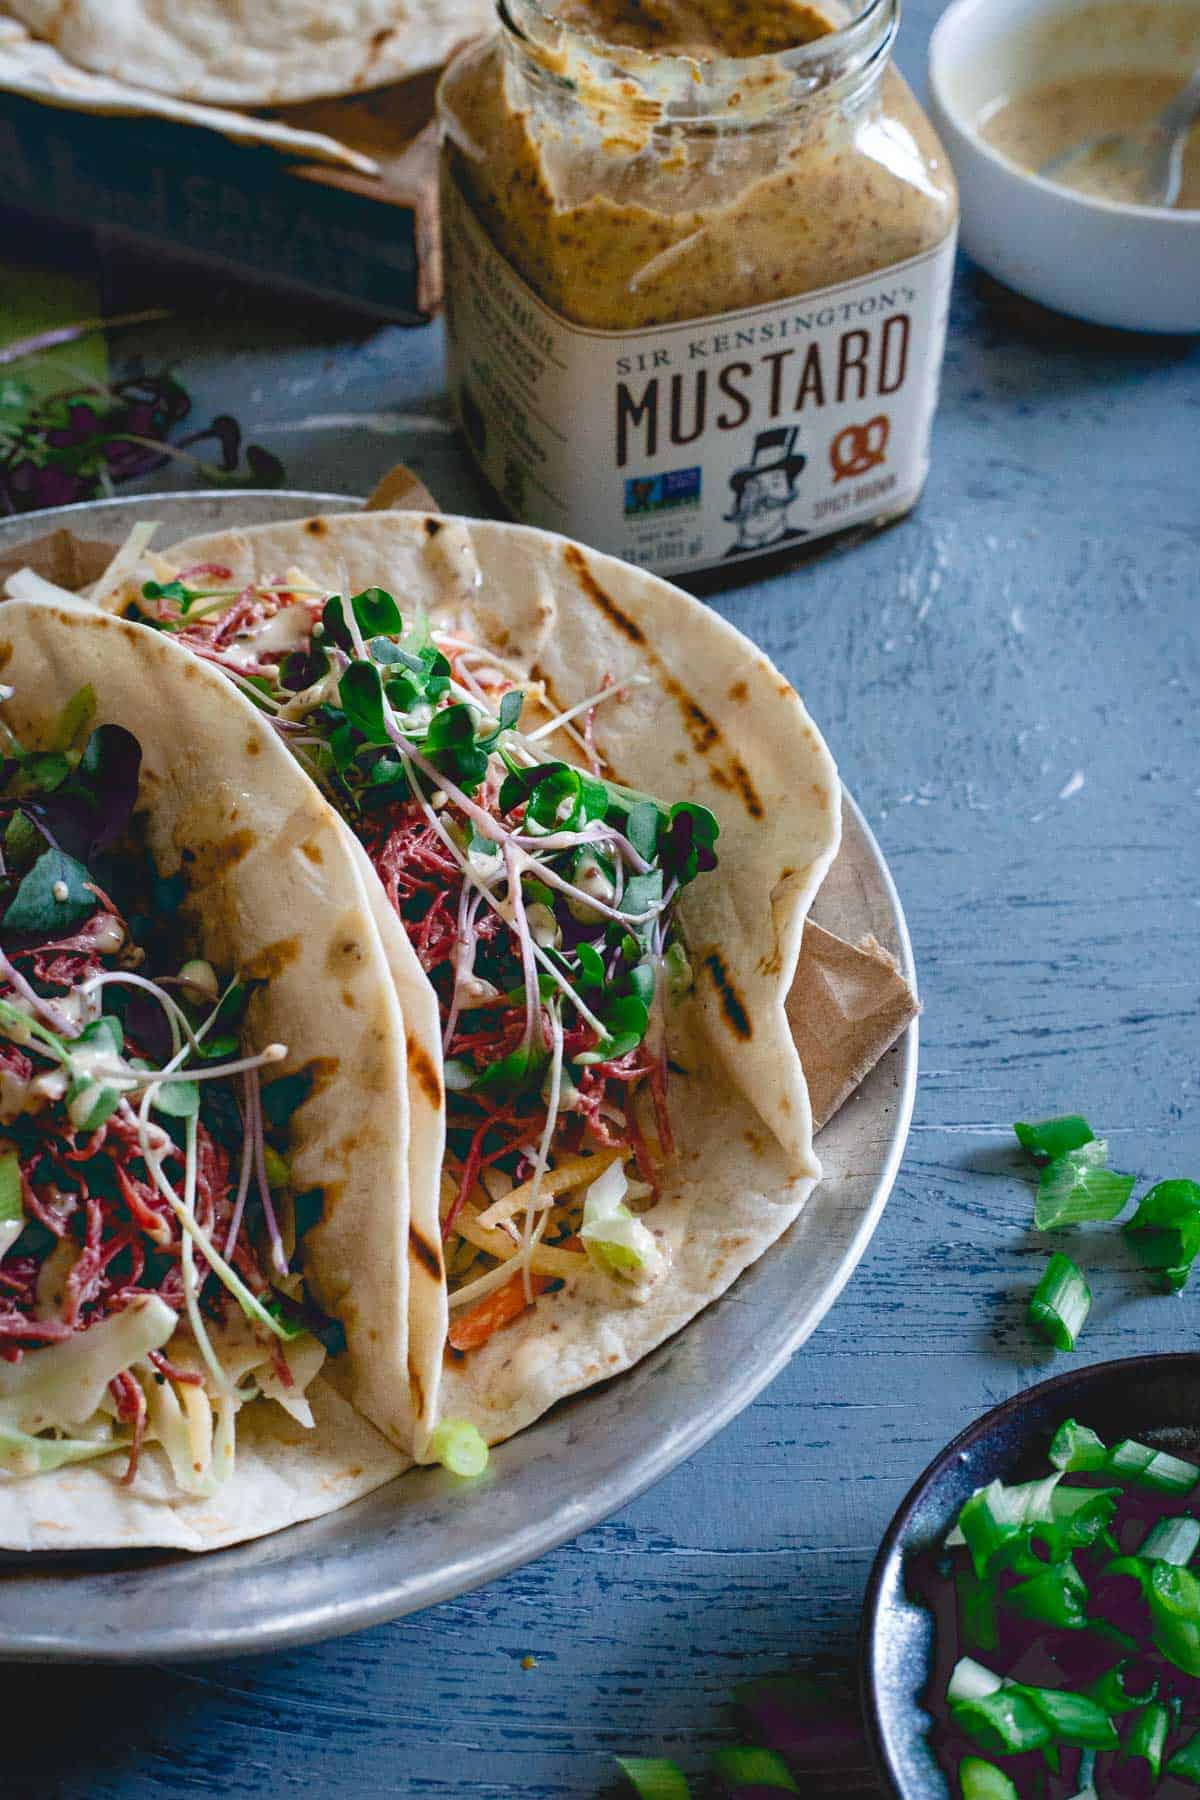 These corned beef tacos are served with a creamy spicy mustard sauce, a simple cabbage carrot slaw and topped with microgreens. Celebrate St. Patrick's Day with a Mexican twist!